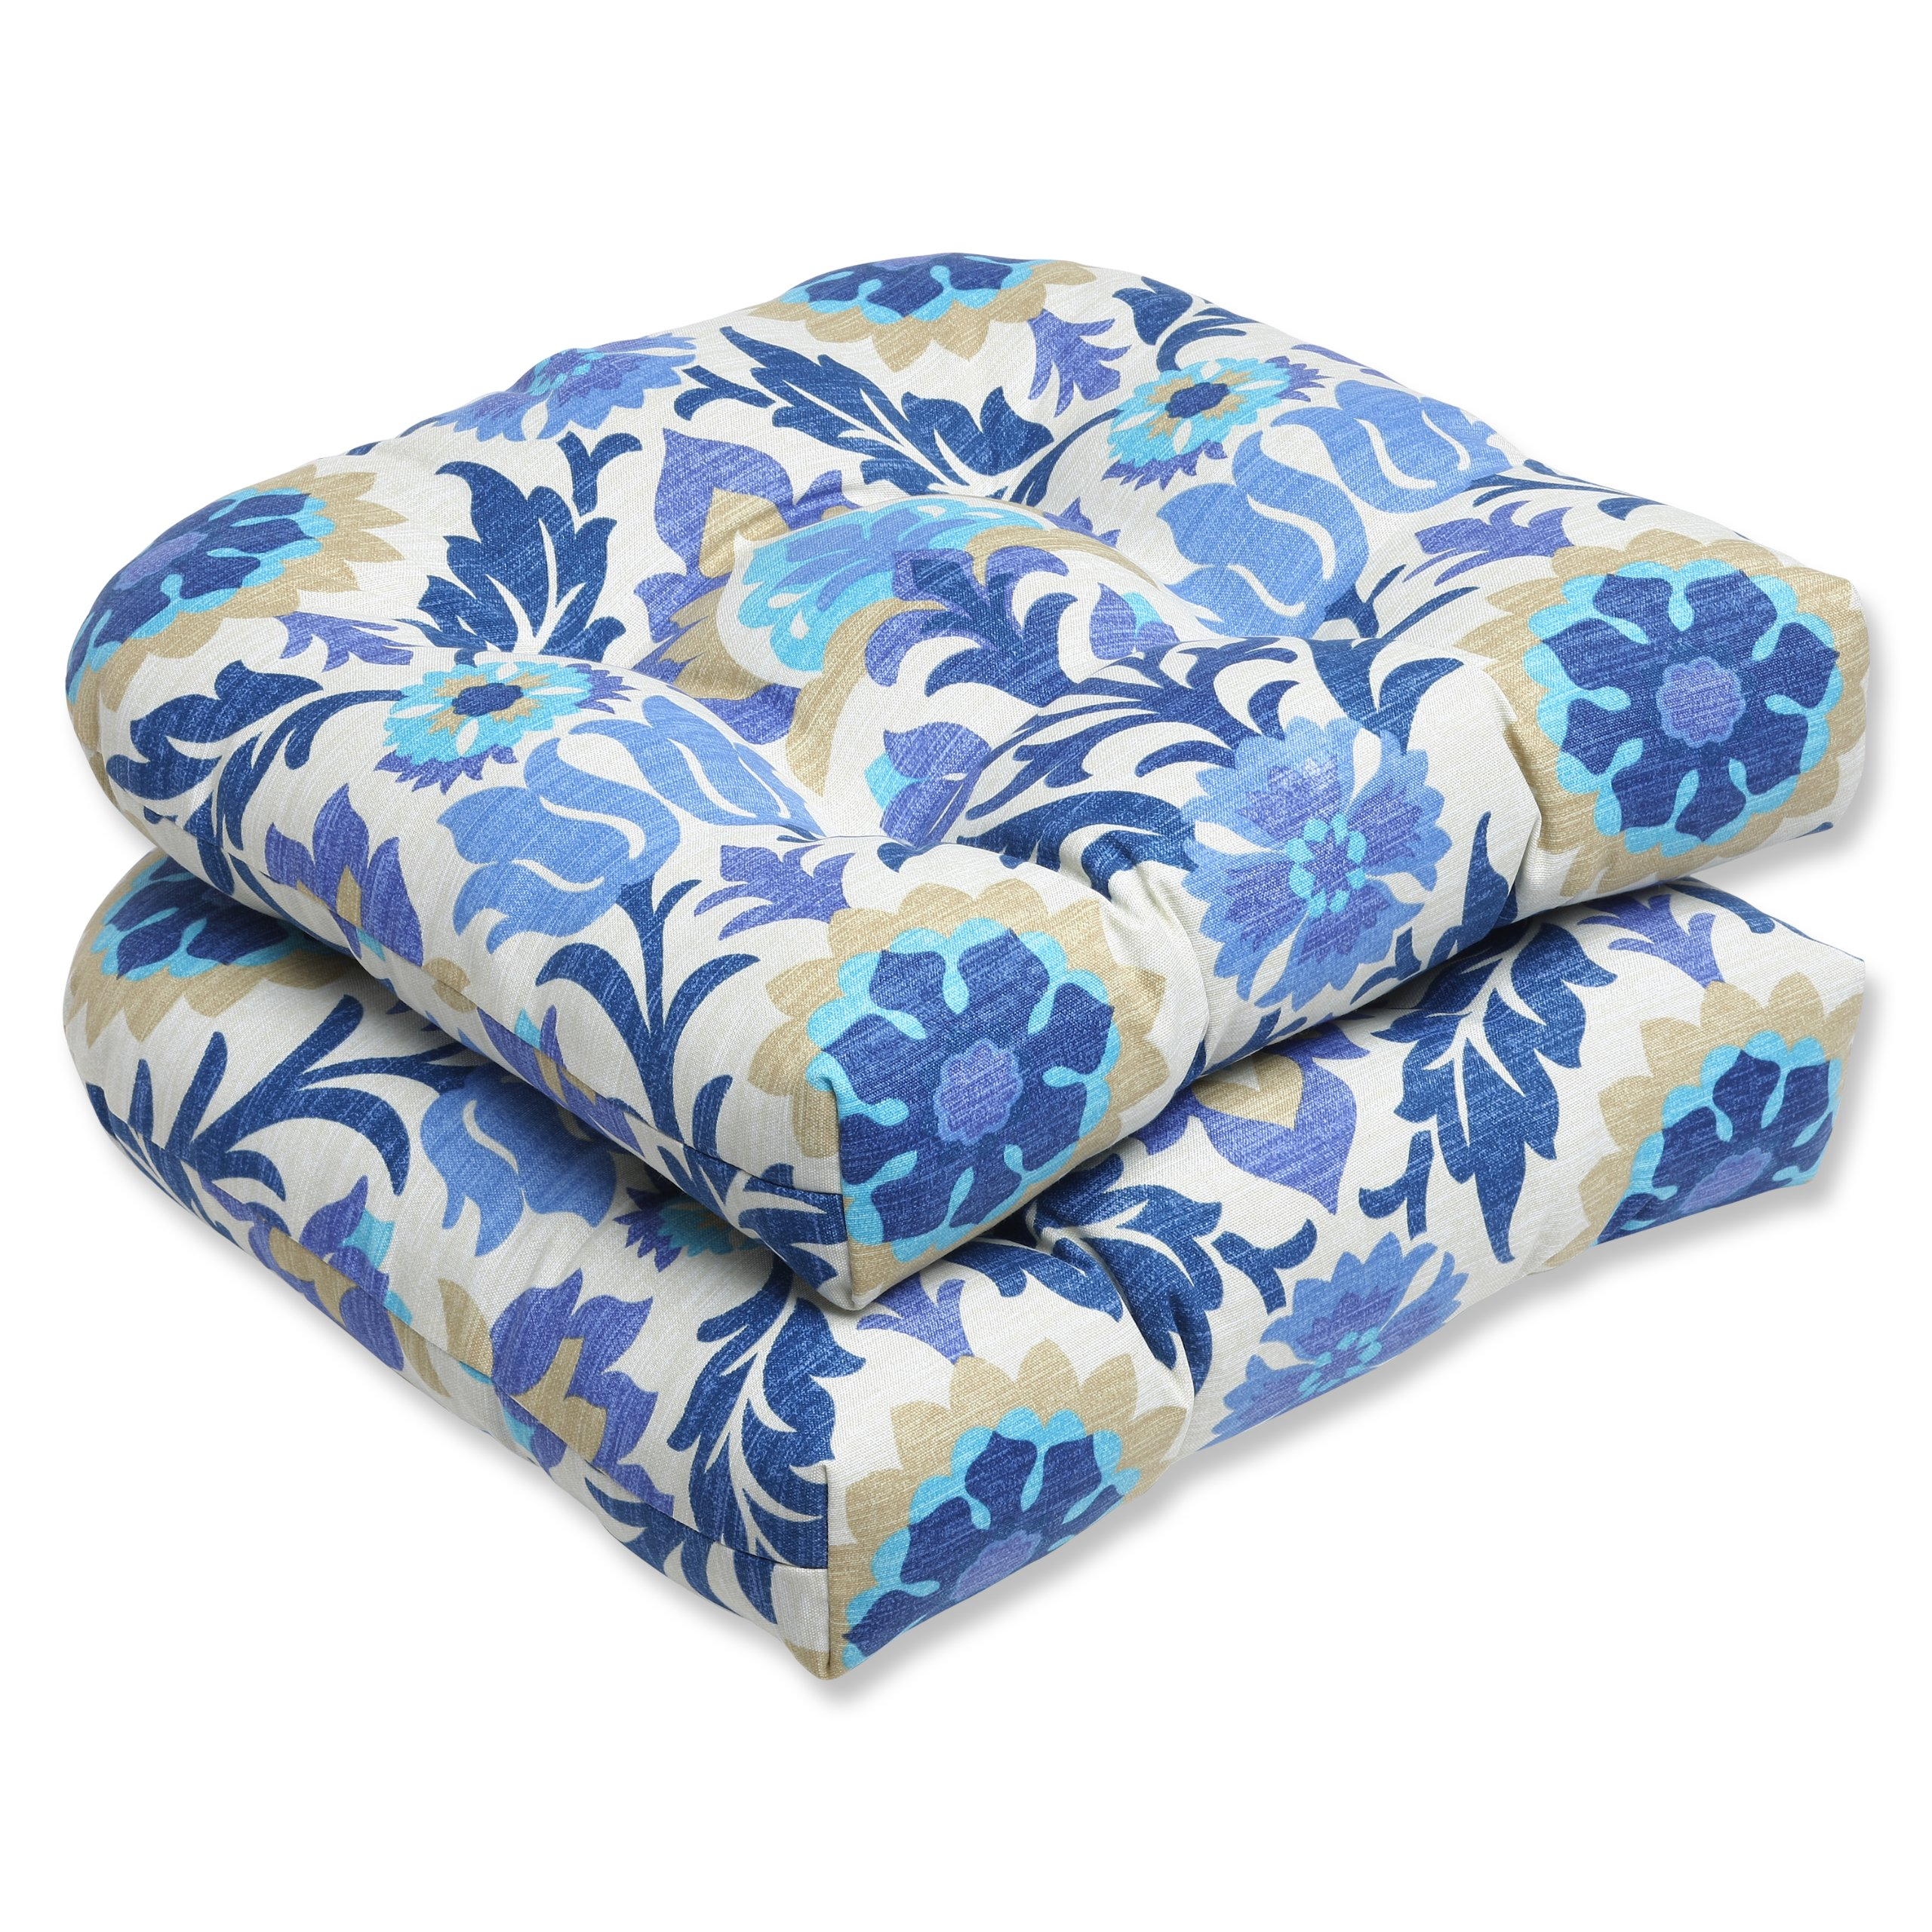 Pillow Perfect Outdoor Santa Maria Wicker Seat